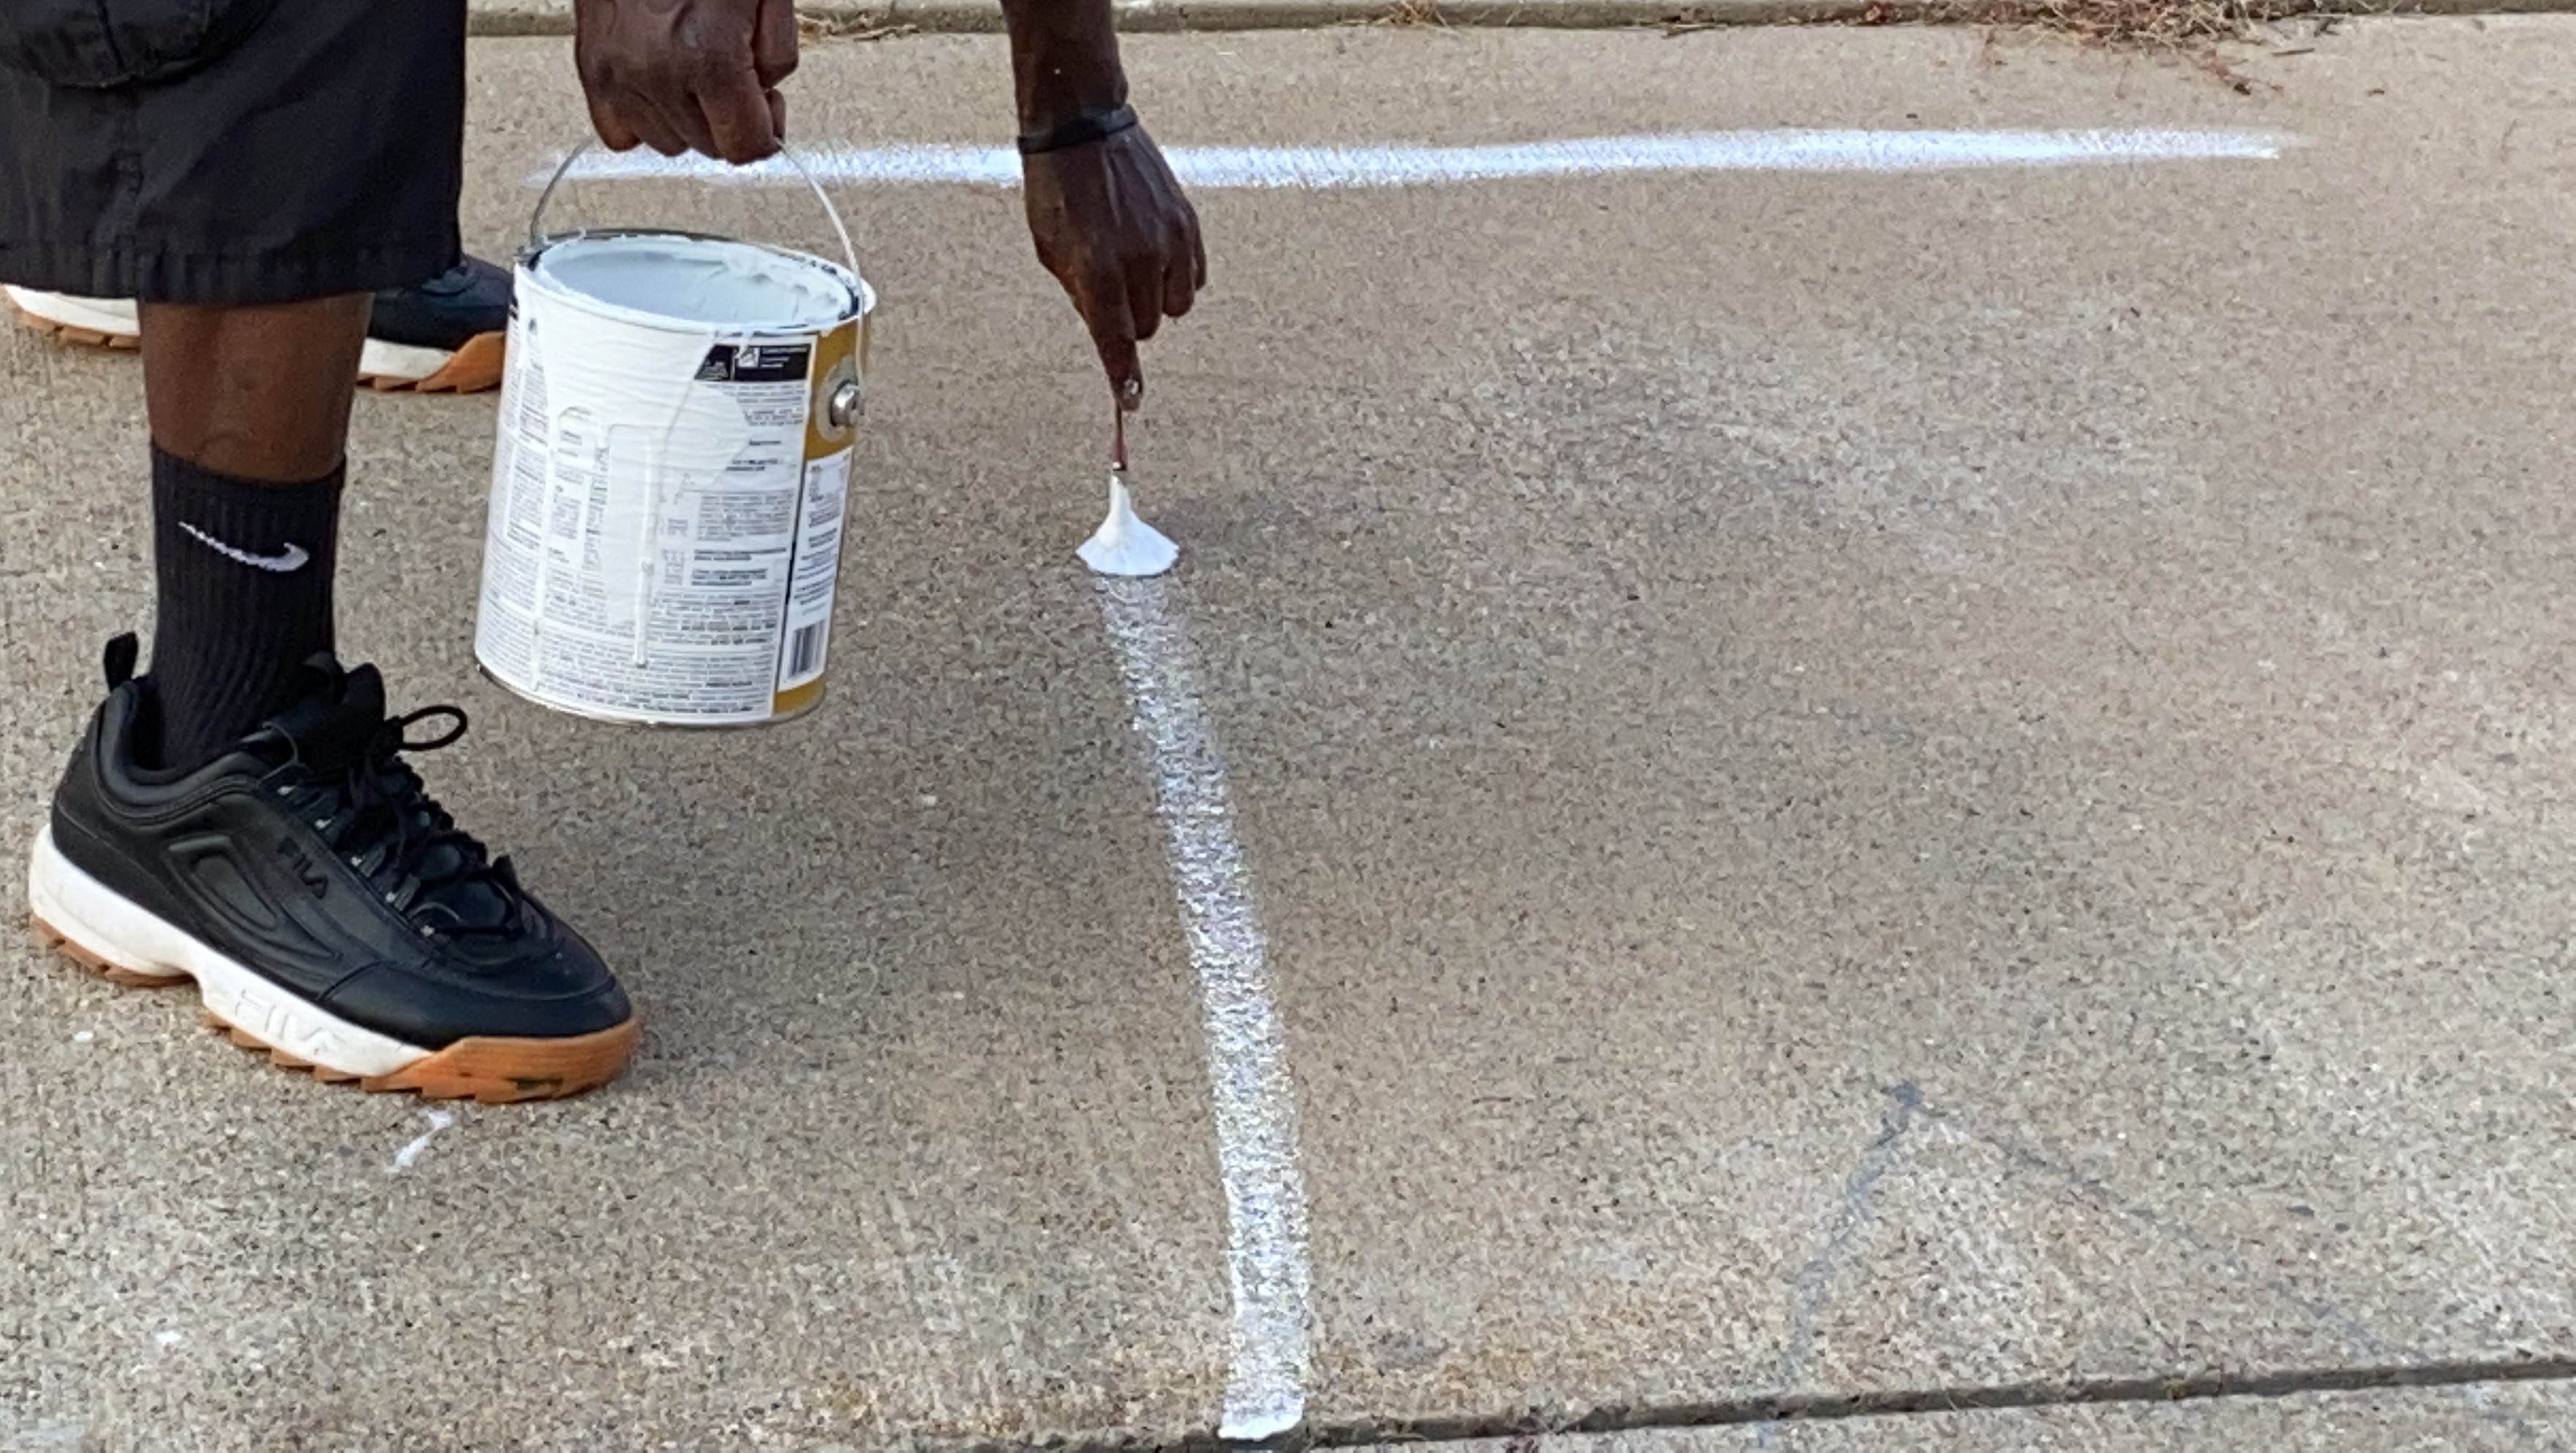 Less than one gallon of white paint is used to create the words on the sidewalk for the mural project Tuesday, July 7, 2020. (WWMT/Jason Heeres)